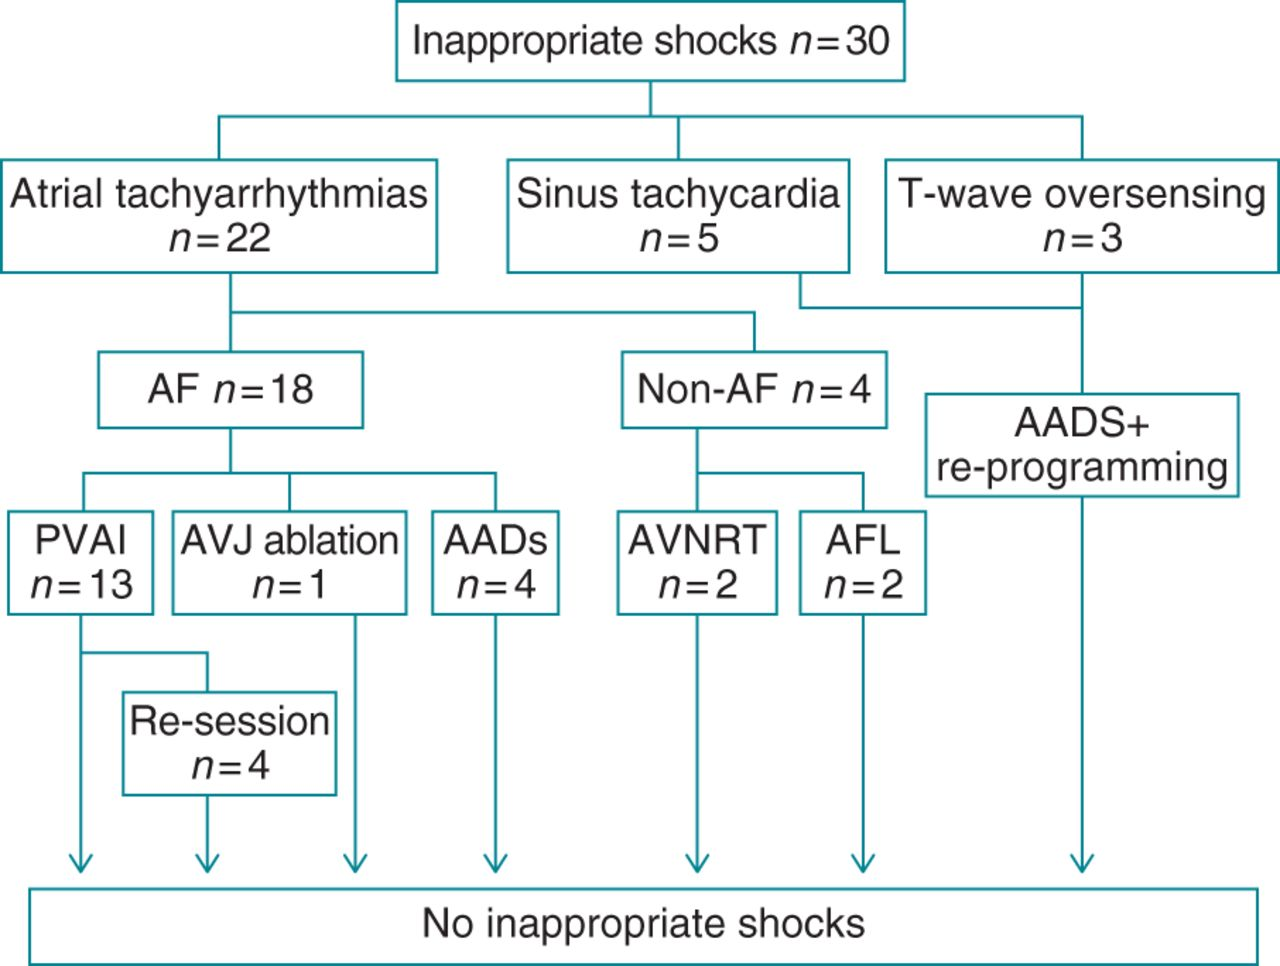 Catheter Ablation Of Atrial Tachyarrhythmias Causing Inappropriate Secura Key Wiring Diagram Supplementary Data